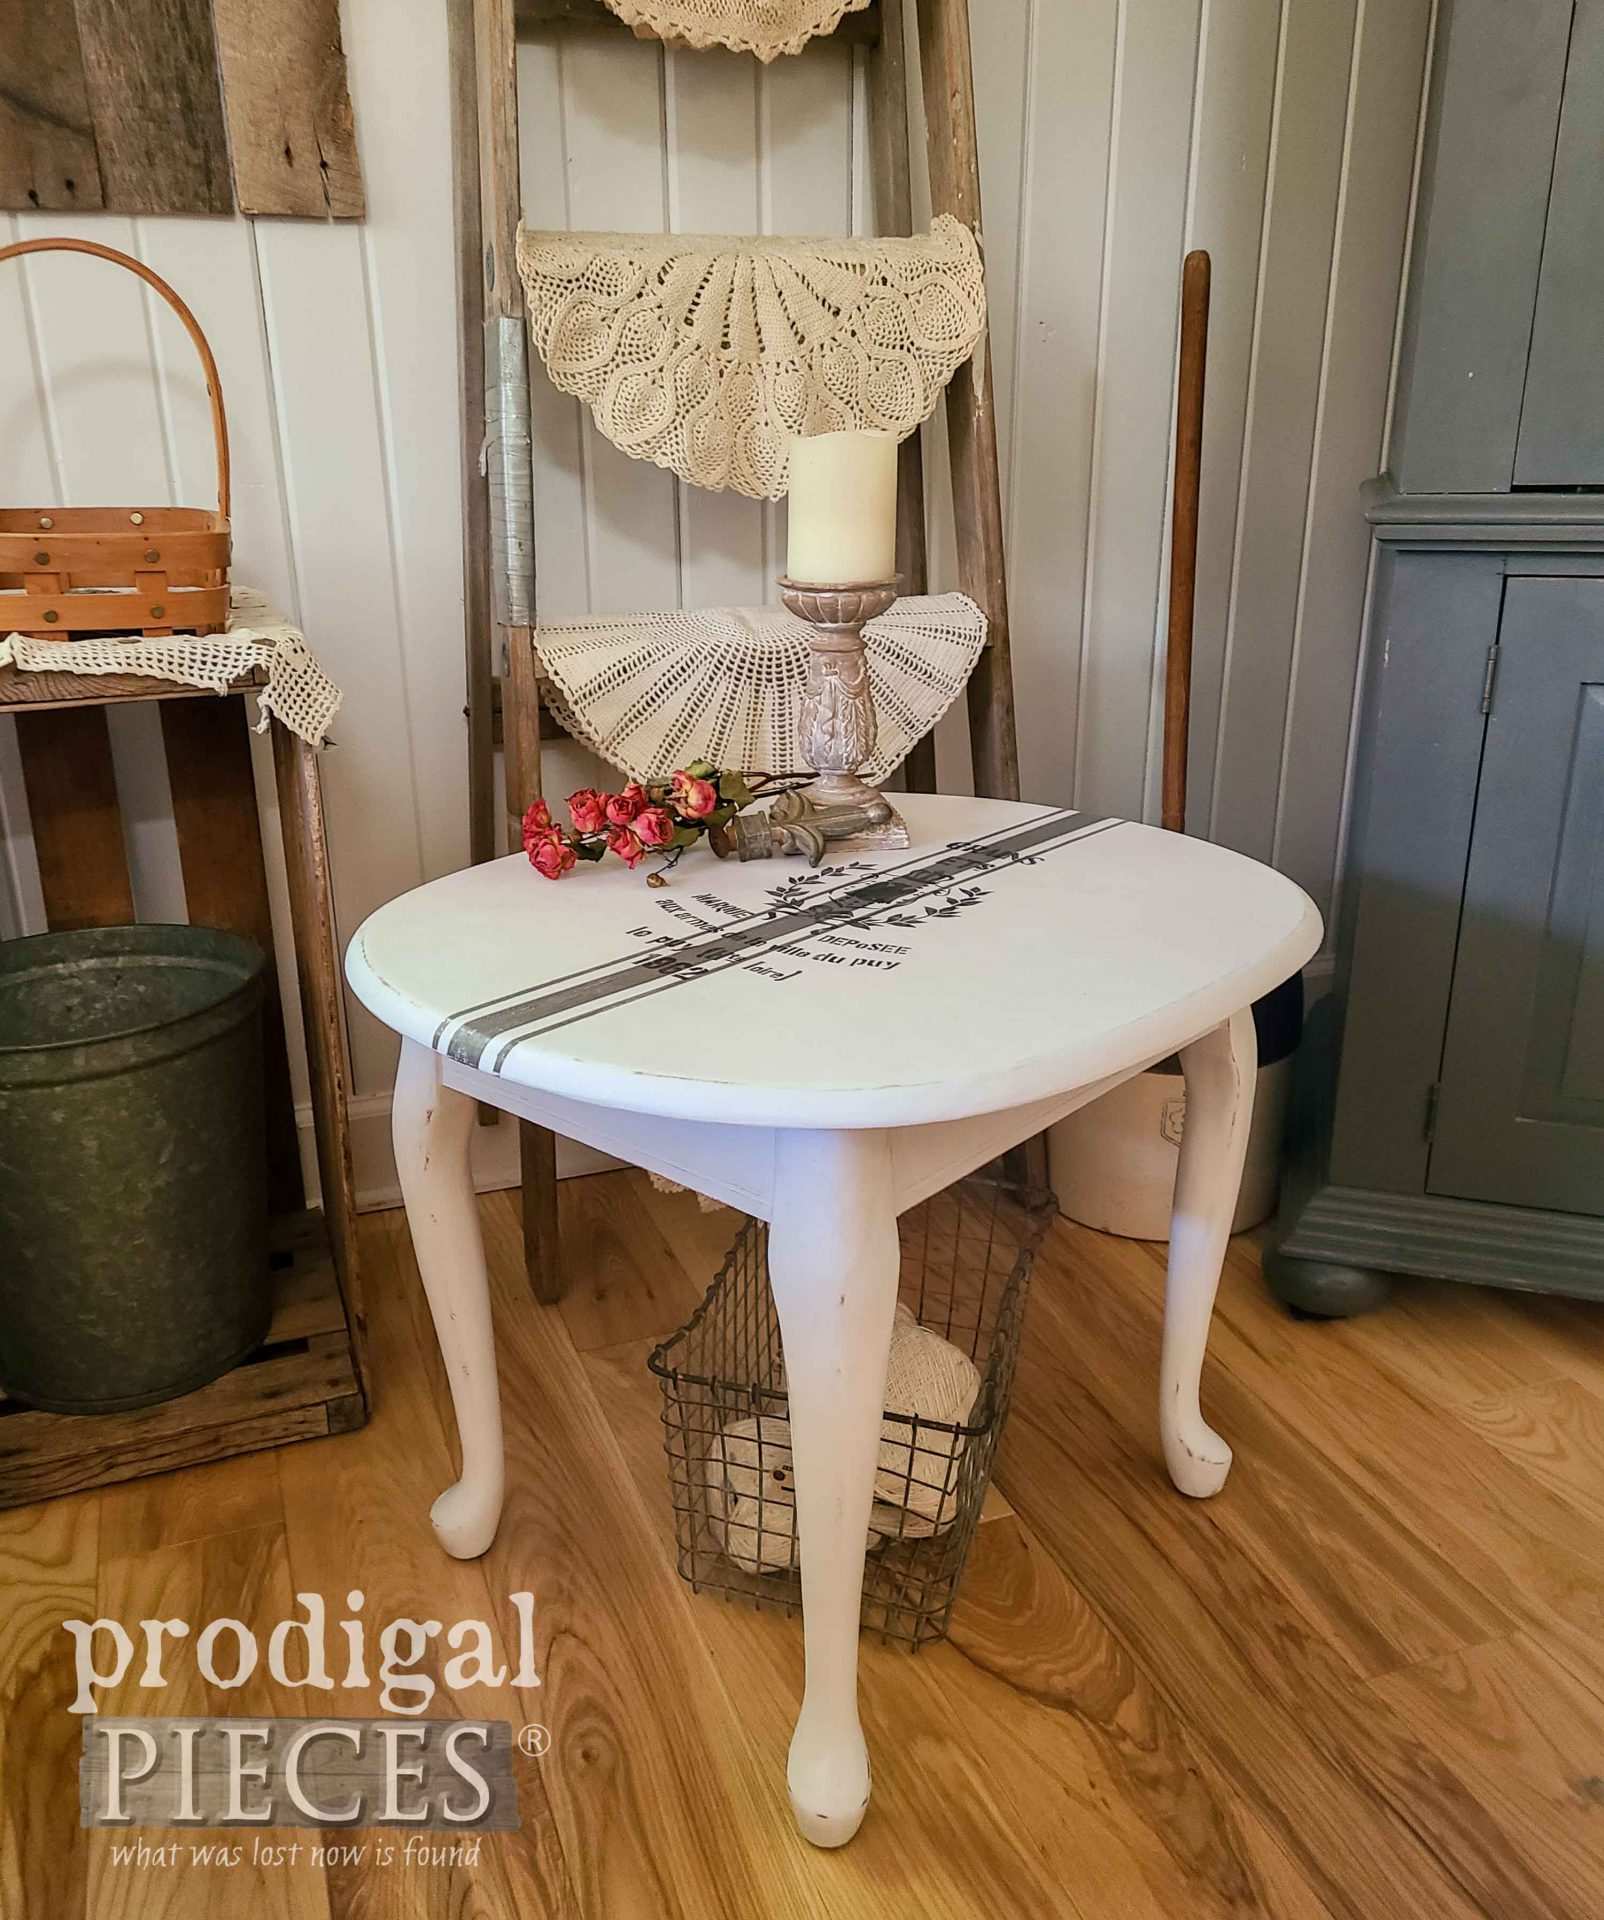 French Farmhouse Painted Side Table with Grain Sack Design by Larissa of Prodigal Pieces | prodigalpieces.com #prodigalpieces #furniture #farmhouse #diy #home